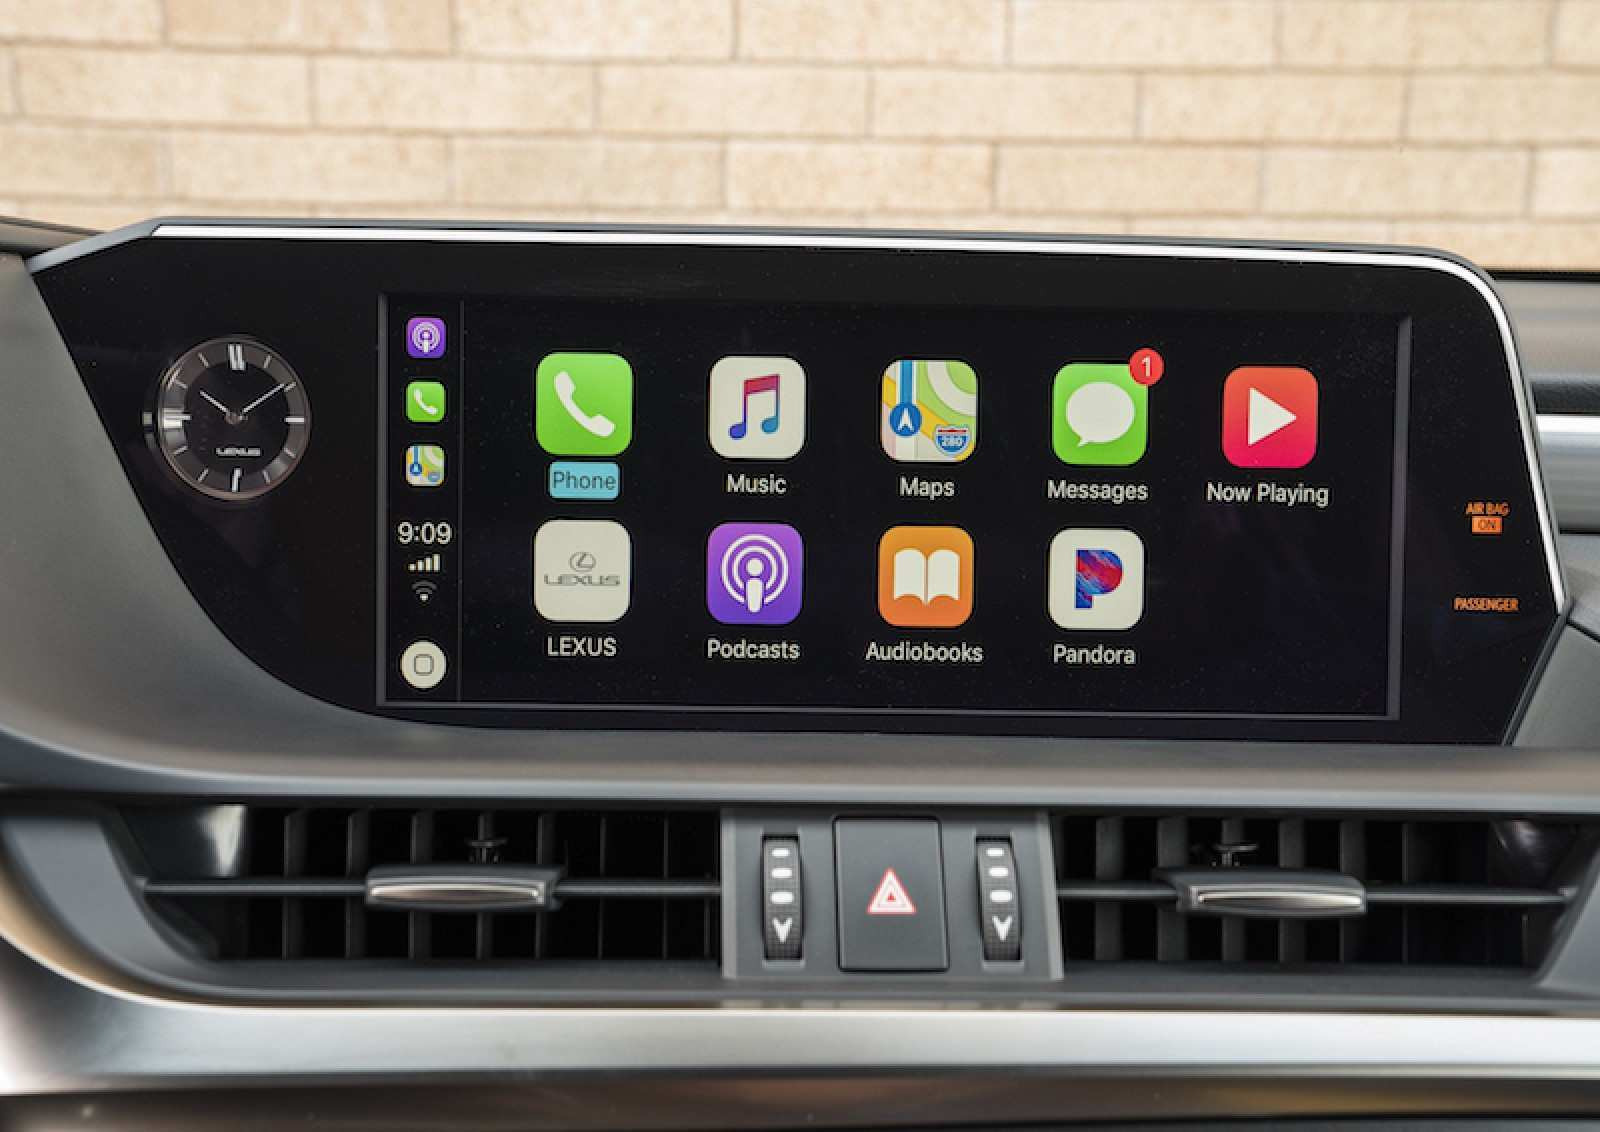 48 New Lexus Carplay 2019 Review And Release Date